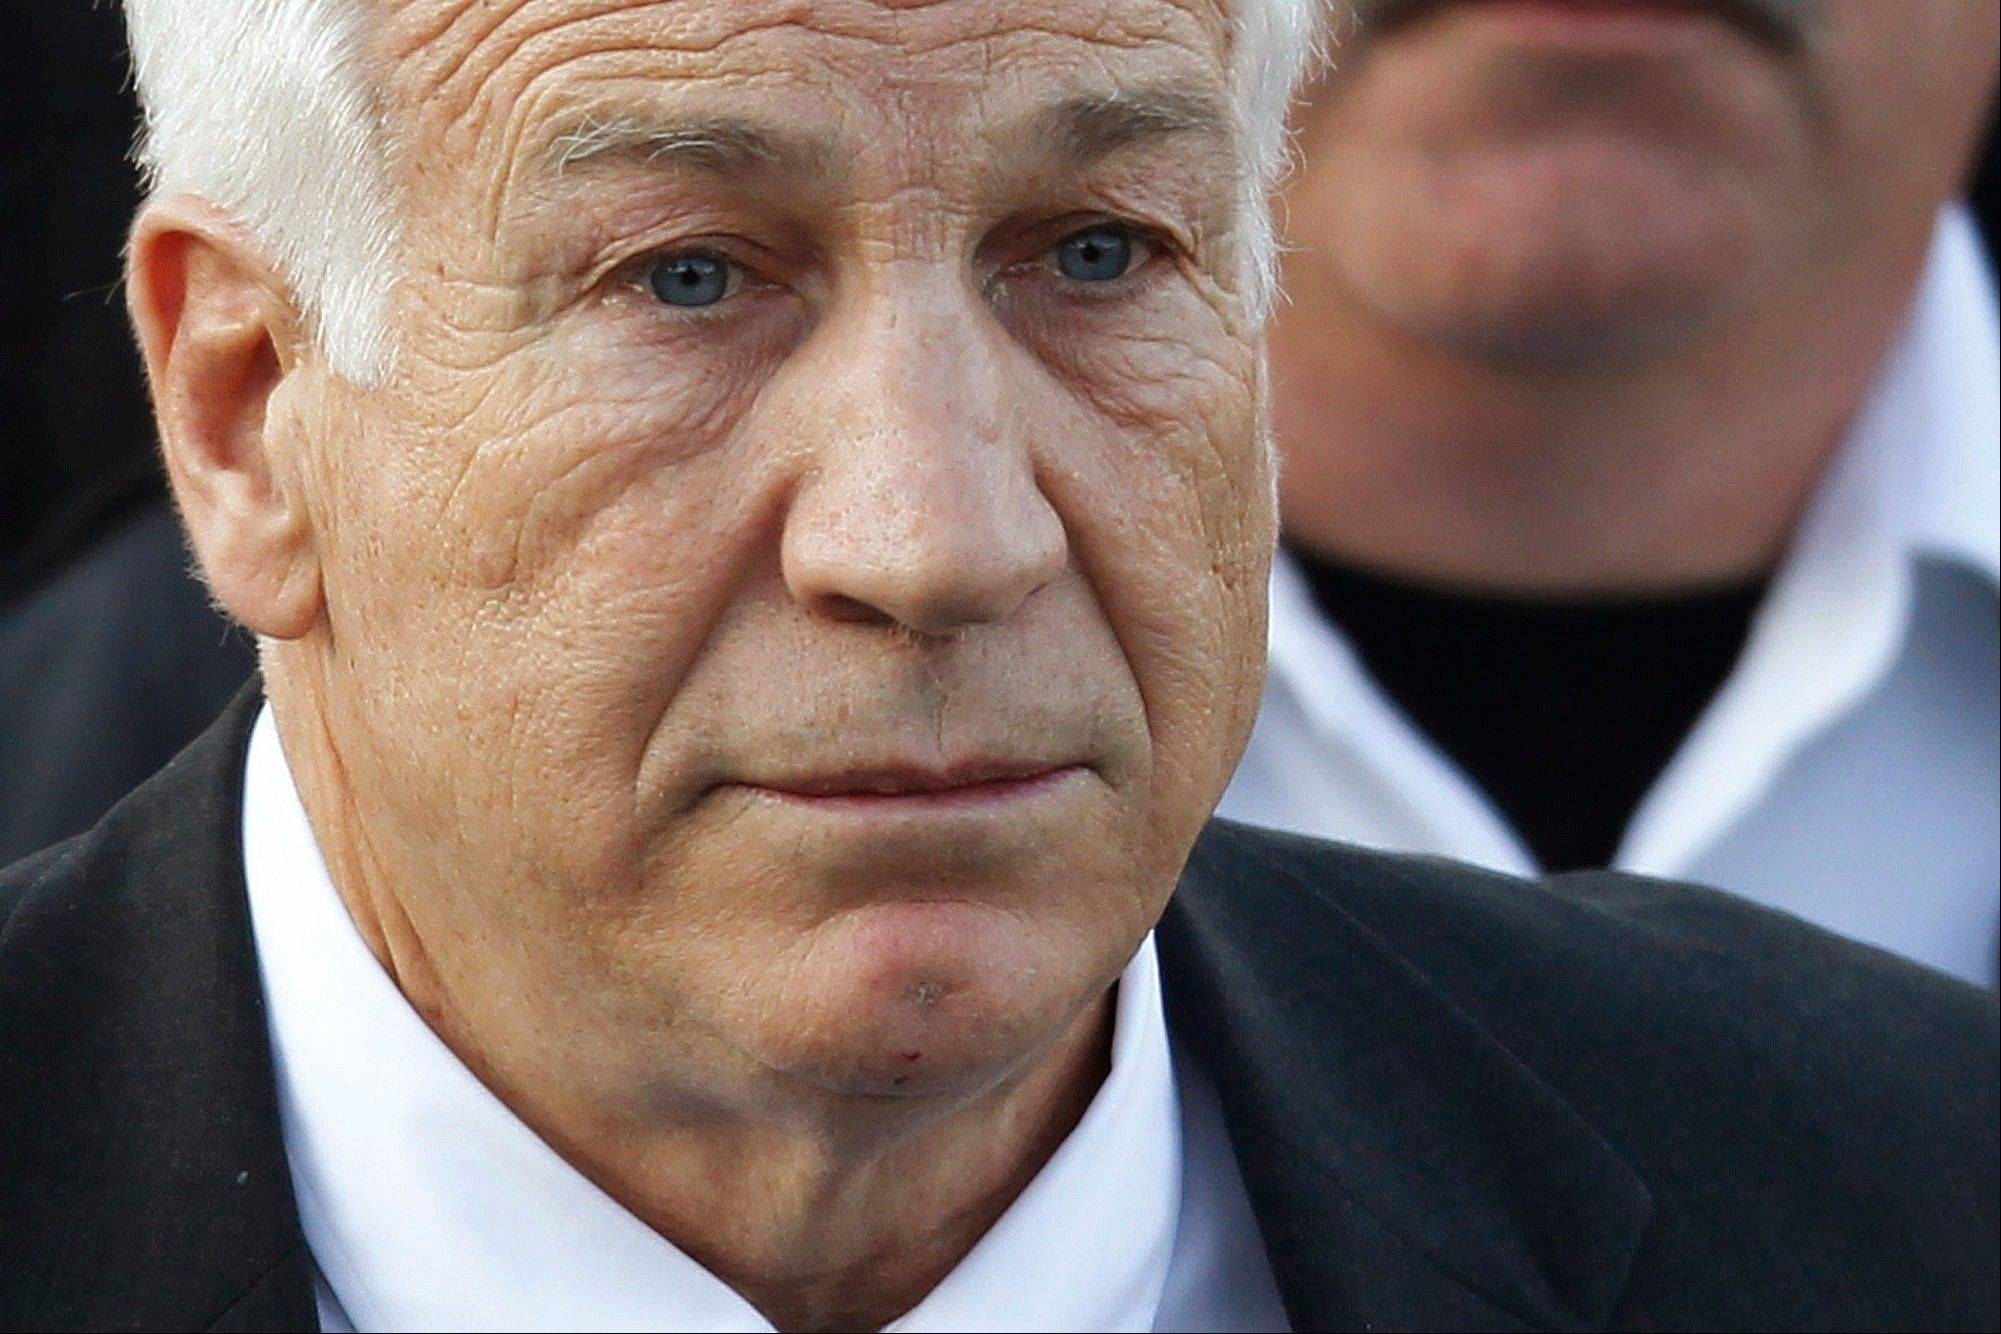 The charity for troubled youths started by convicted pedophile Jerry Sandusky said Monday that it will postpone a plan to shut down and transfer programs and assets to a Texas ministry until lawsuits against the charity are resolved.